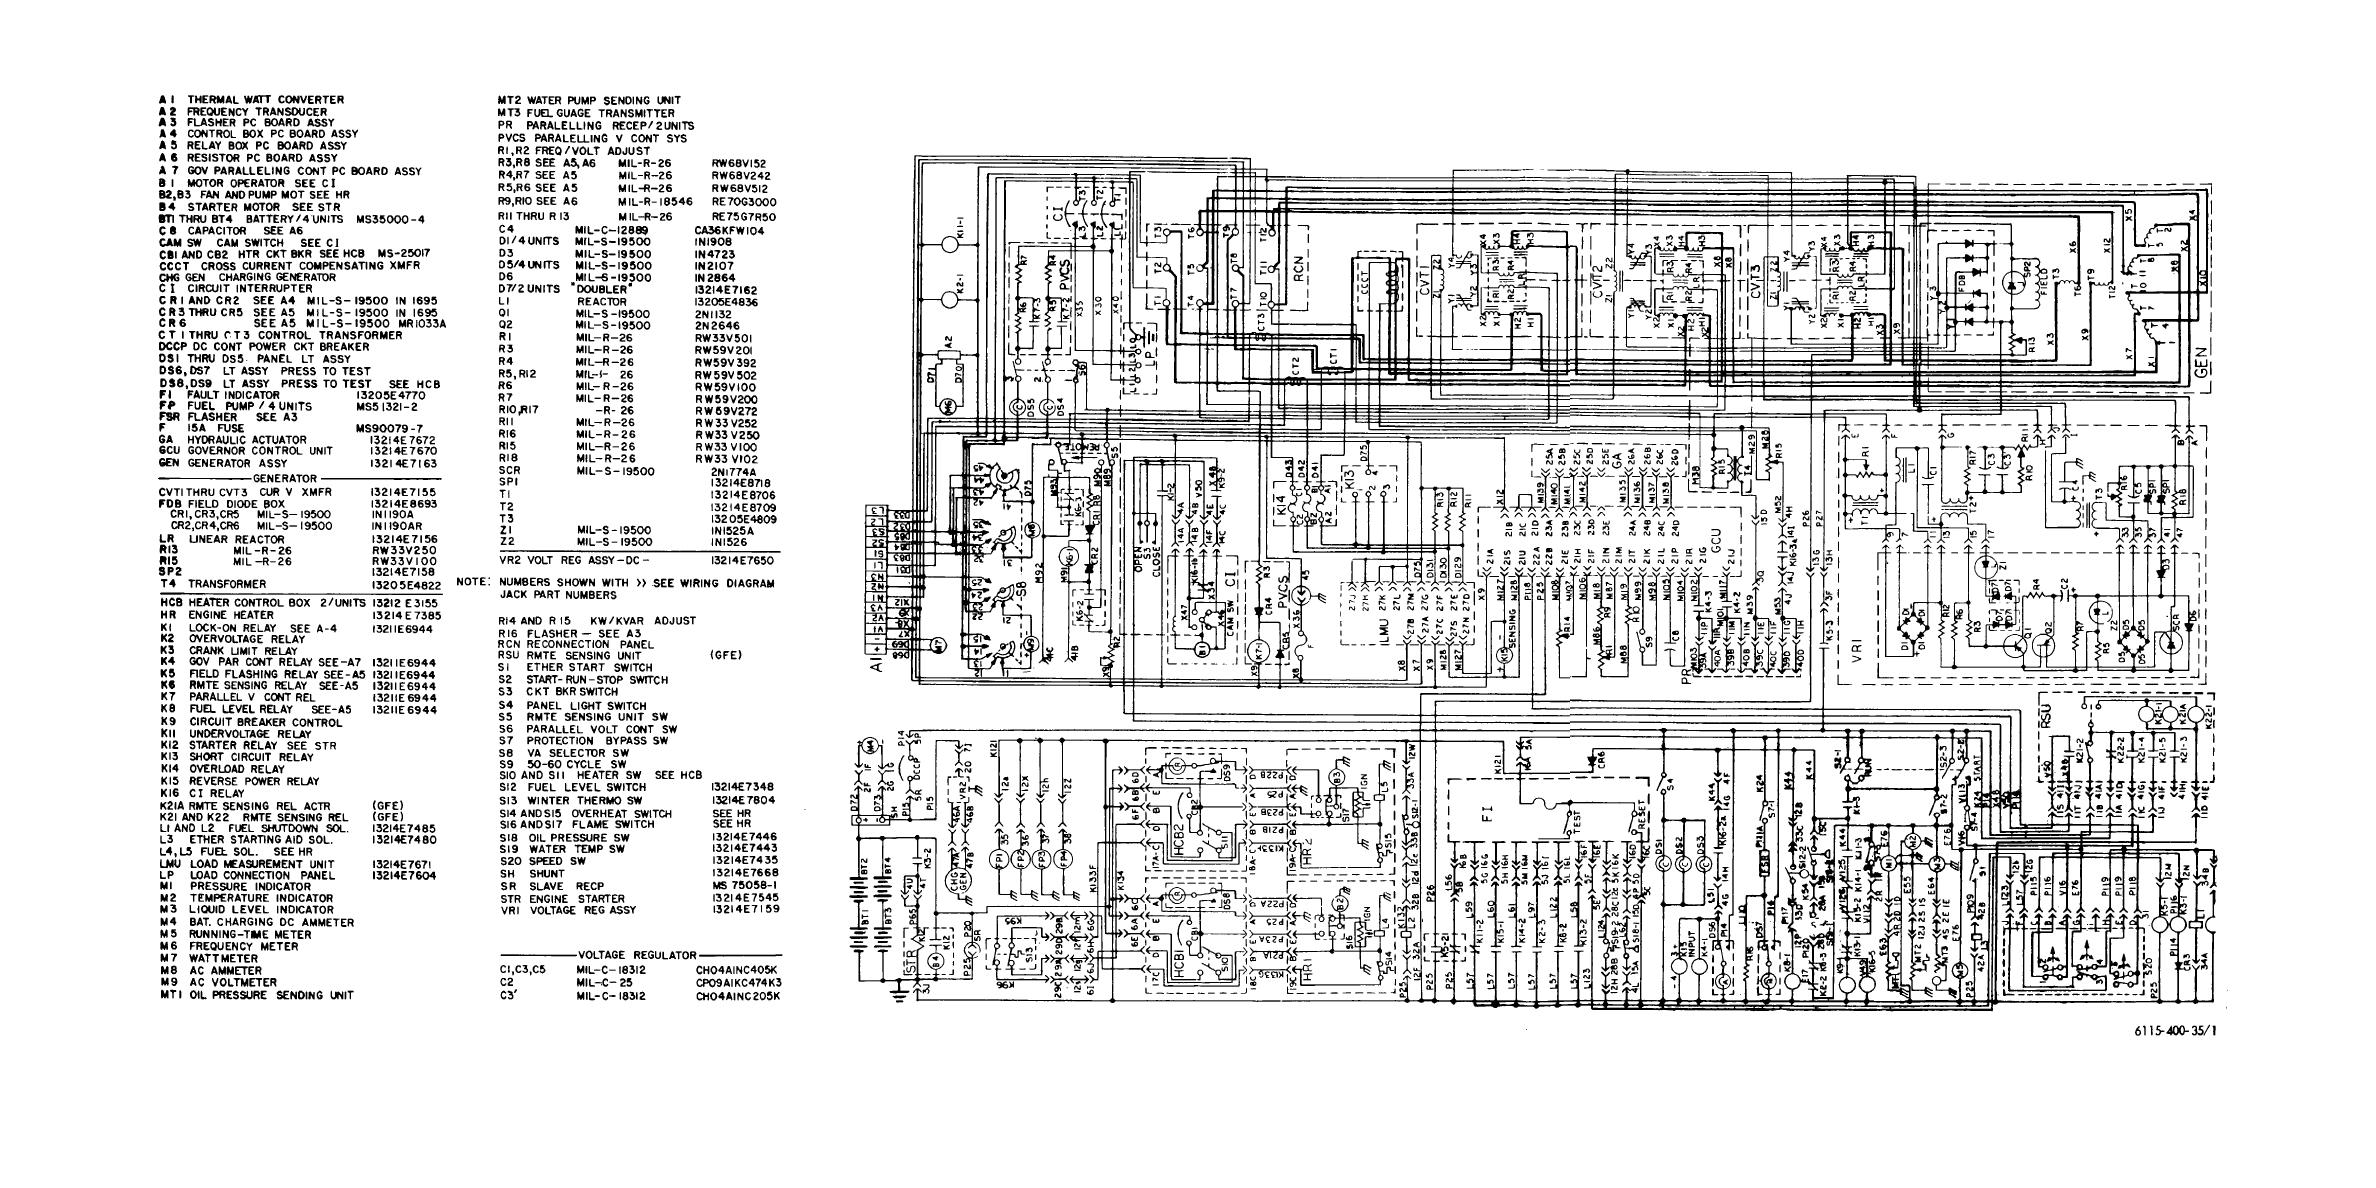 Wiring Diagram Legends Explore On The Net Symbols Australia Legend Get Free Image About Dc Chevrolet